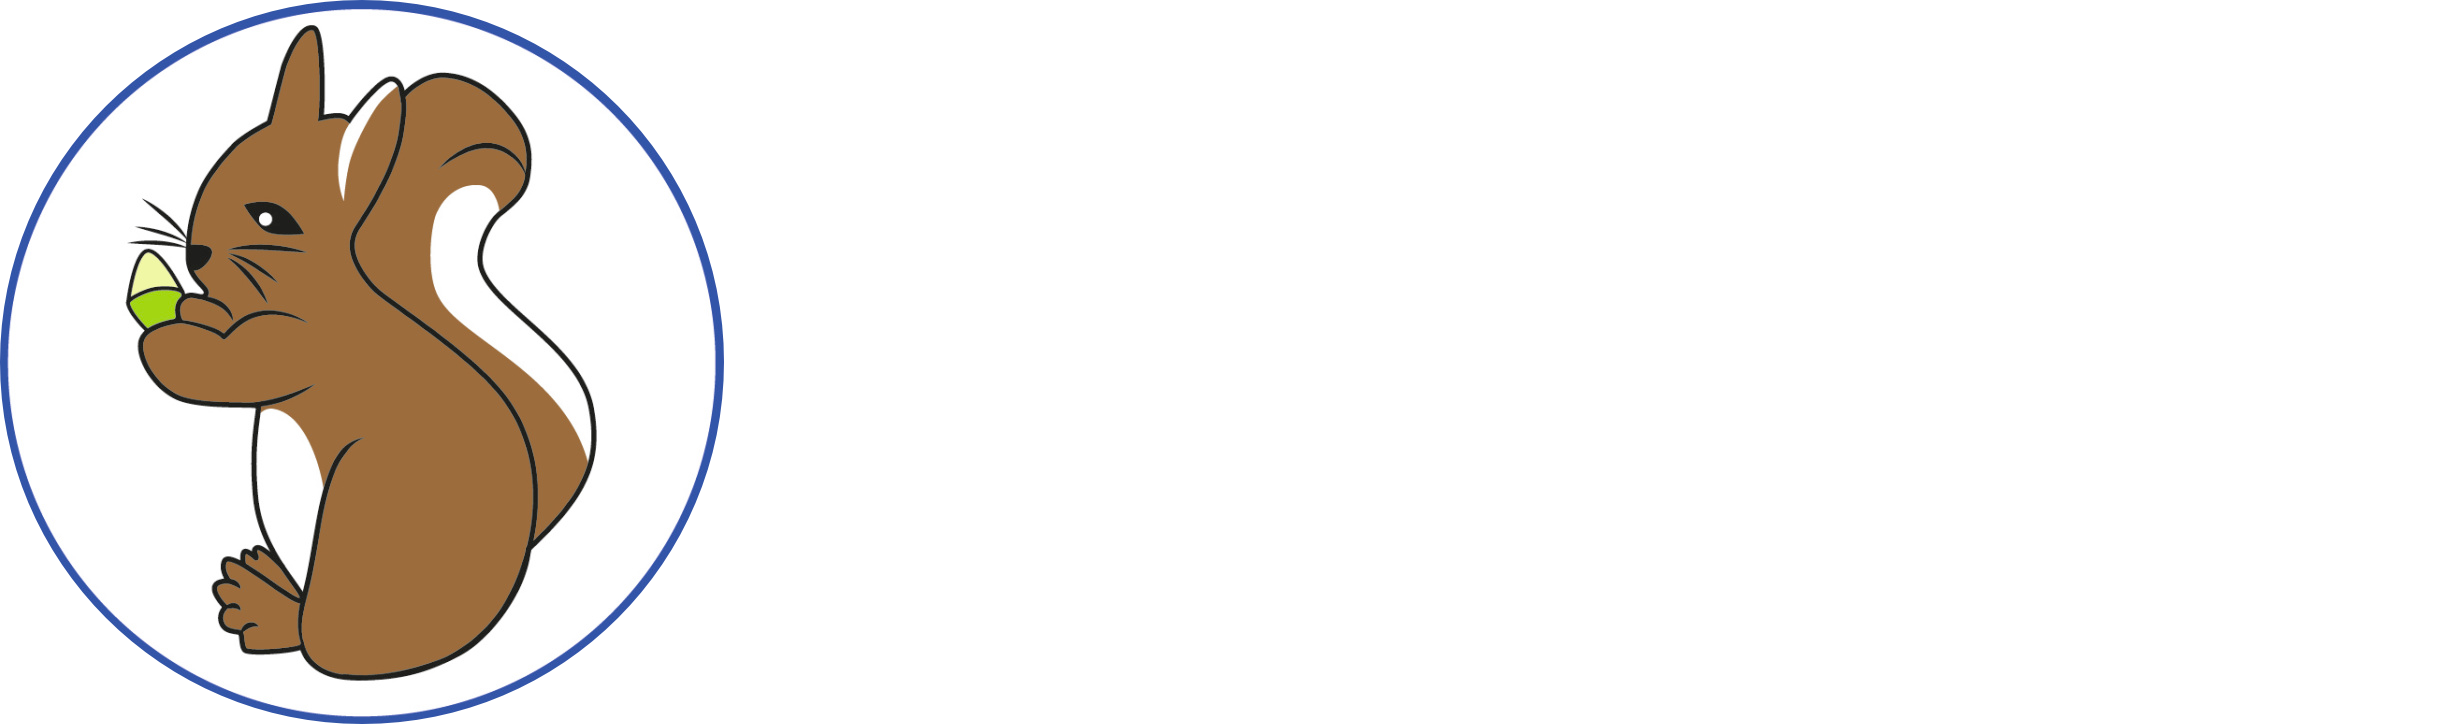 Curdworth Primary School hompage